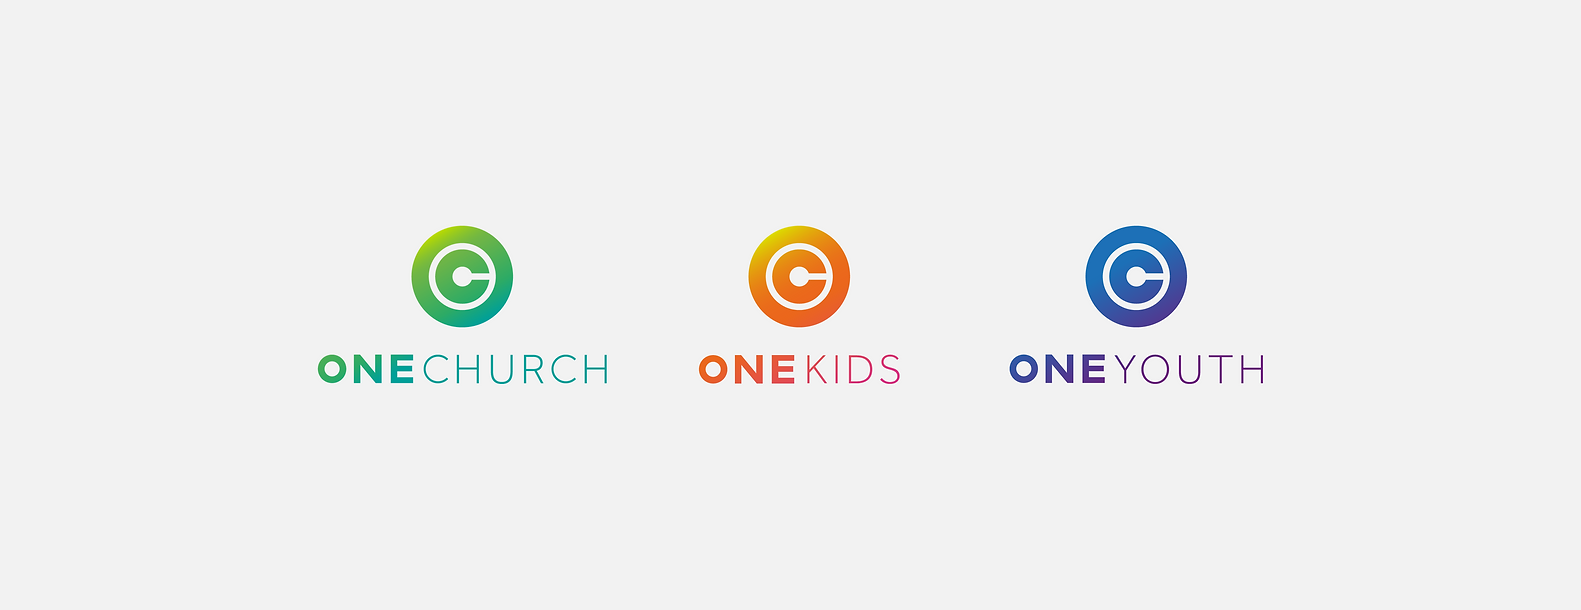 One Church Web Files-05.png